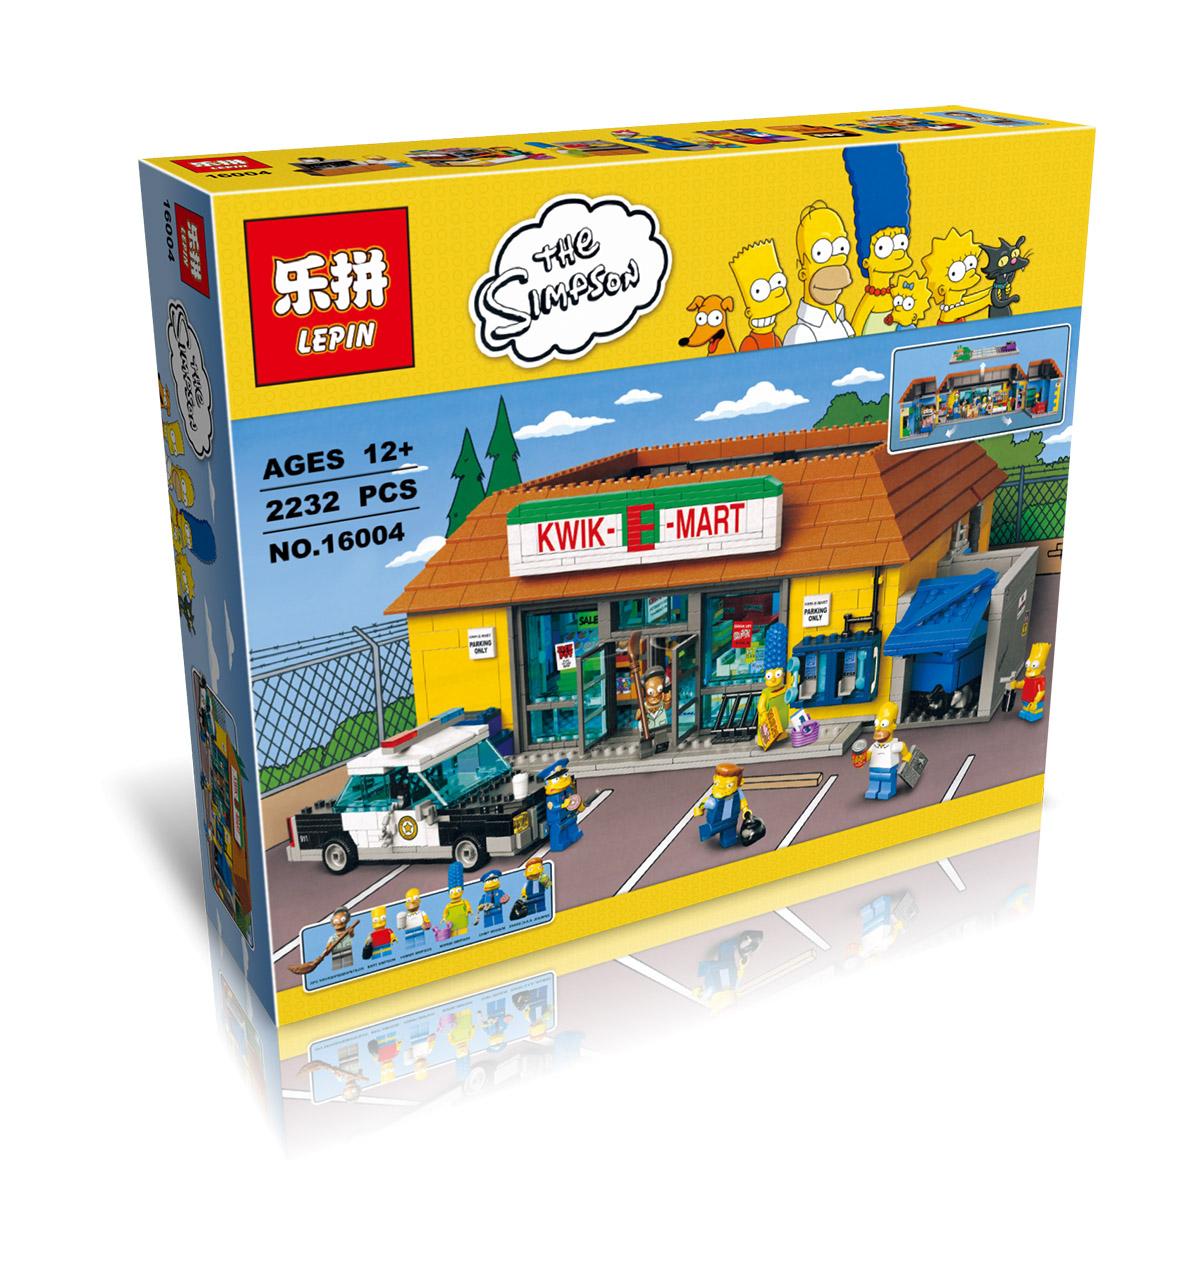 2232+ PCS Building Bricks, LP 16004 Building Blocks Simpsons 71016 The Kwik-E-Mart.